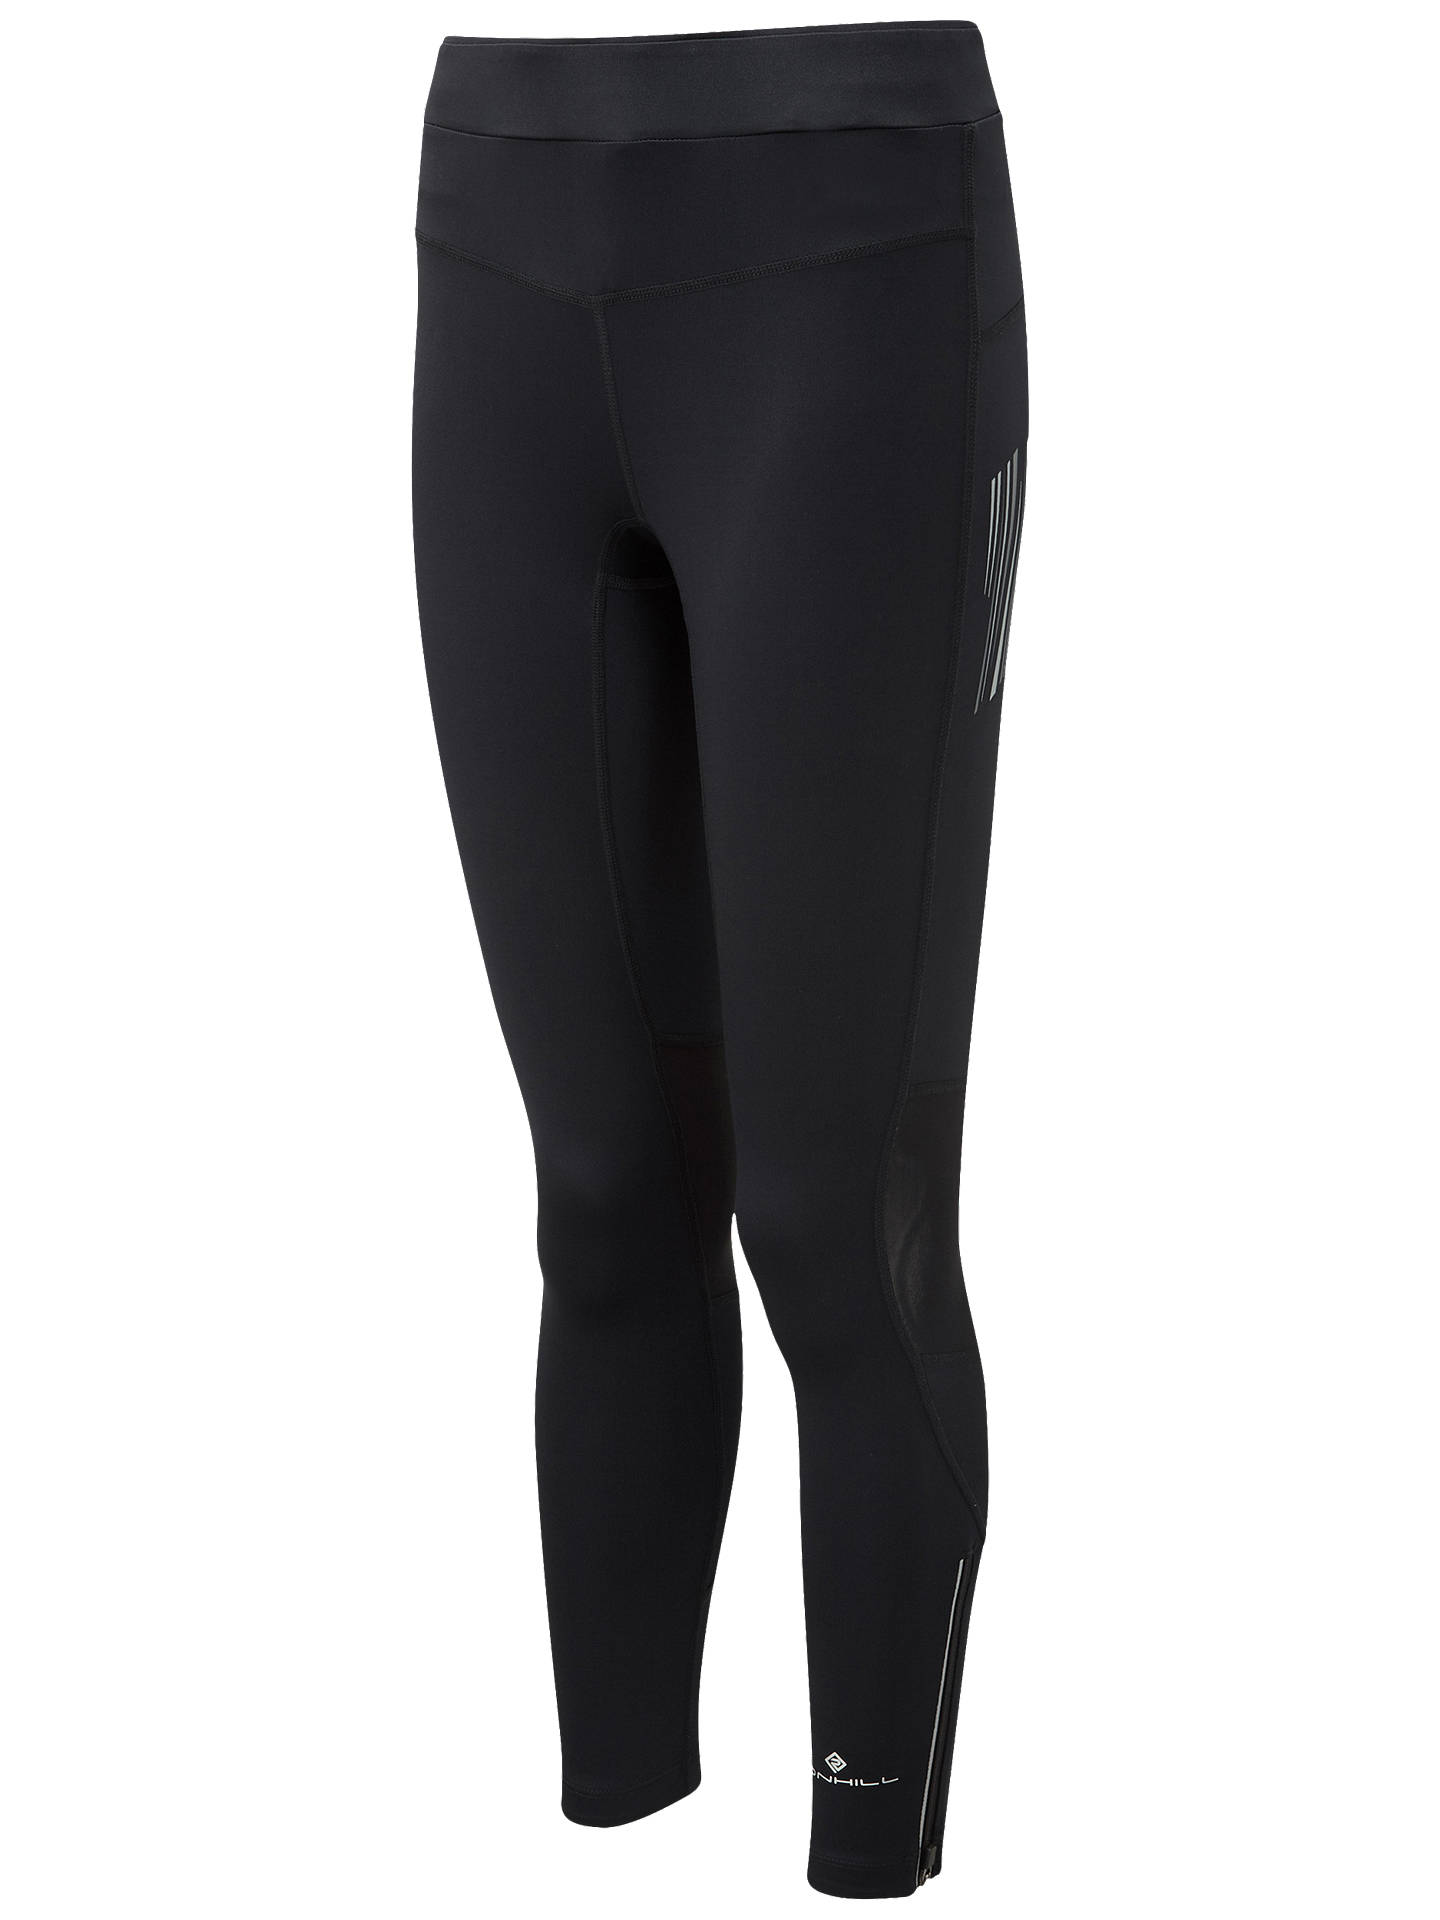 Buy Ronhill Stride Stretch Running Leggings, All Black, 8 Online at johnlewis.com